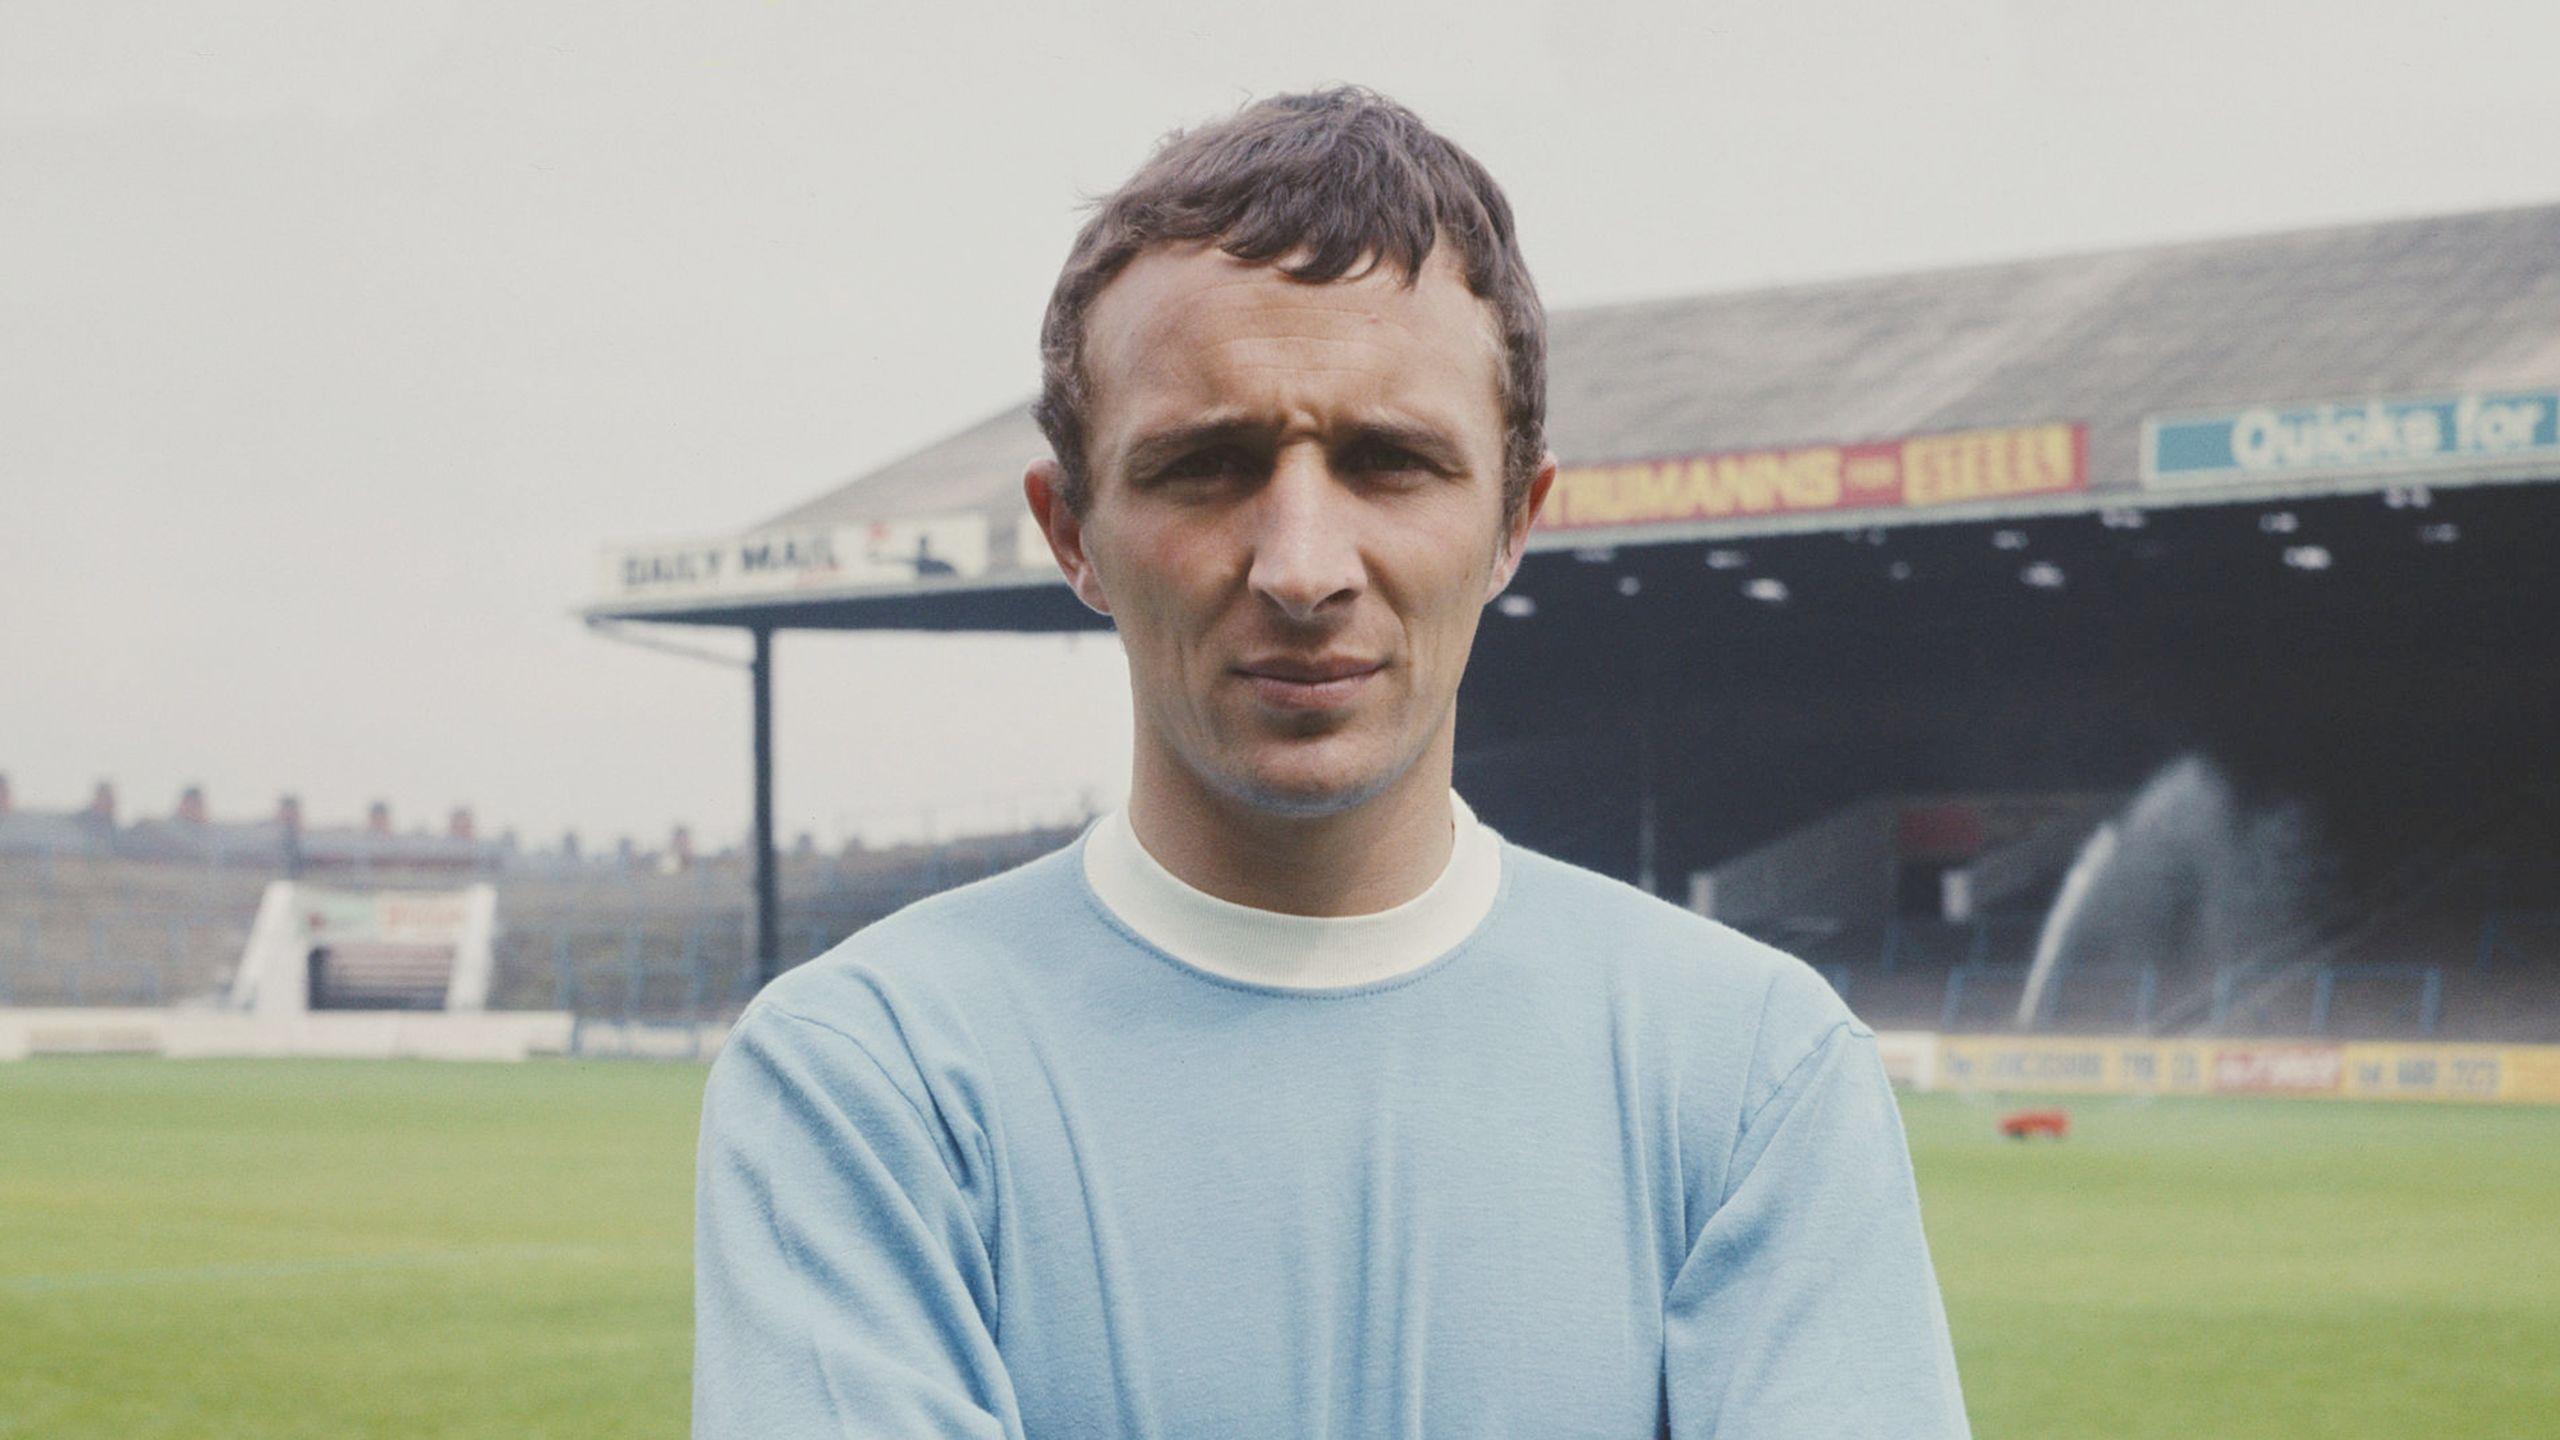 Top 10 man city players of all time